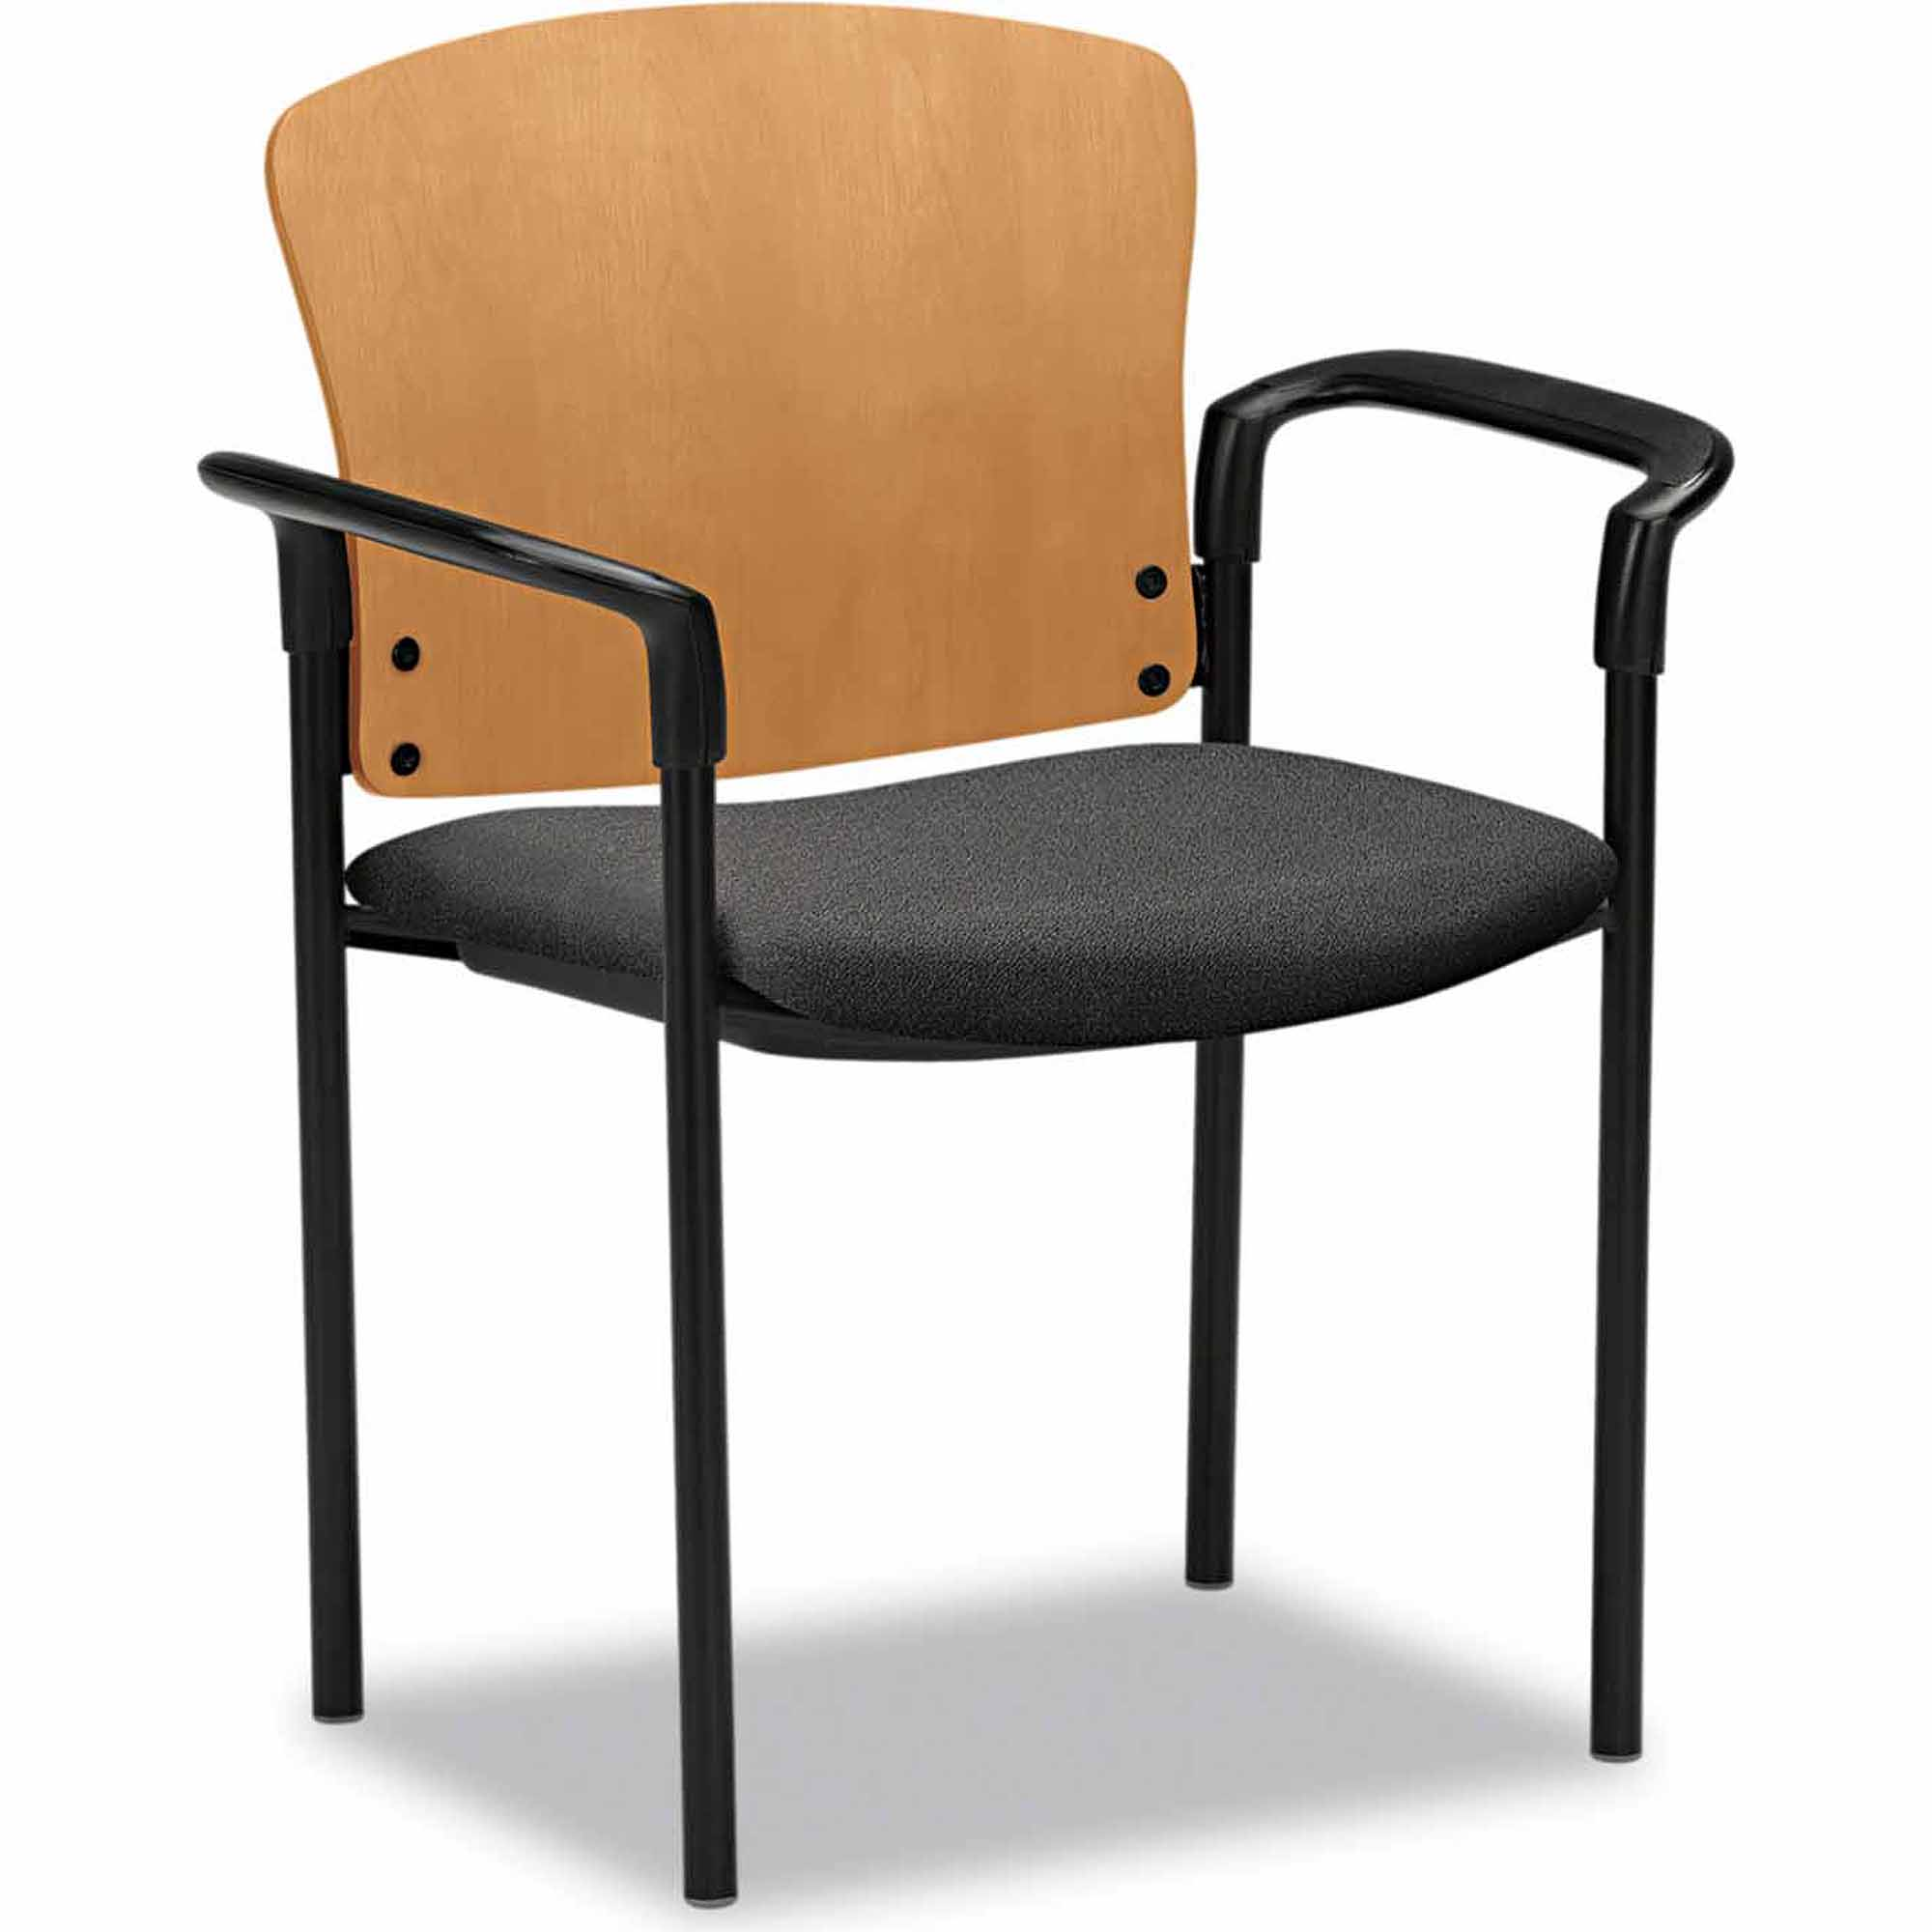 Hon Pagoda 4091 Series Guest Chair, Harvest Wood Back/Gray Fabric Seat, Set of 2